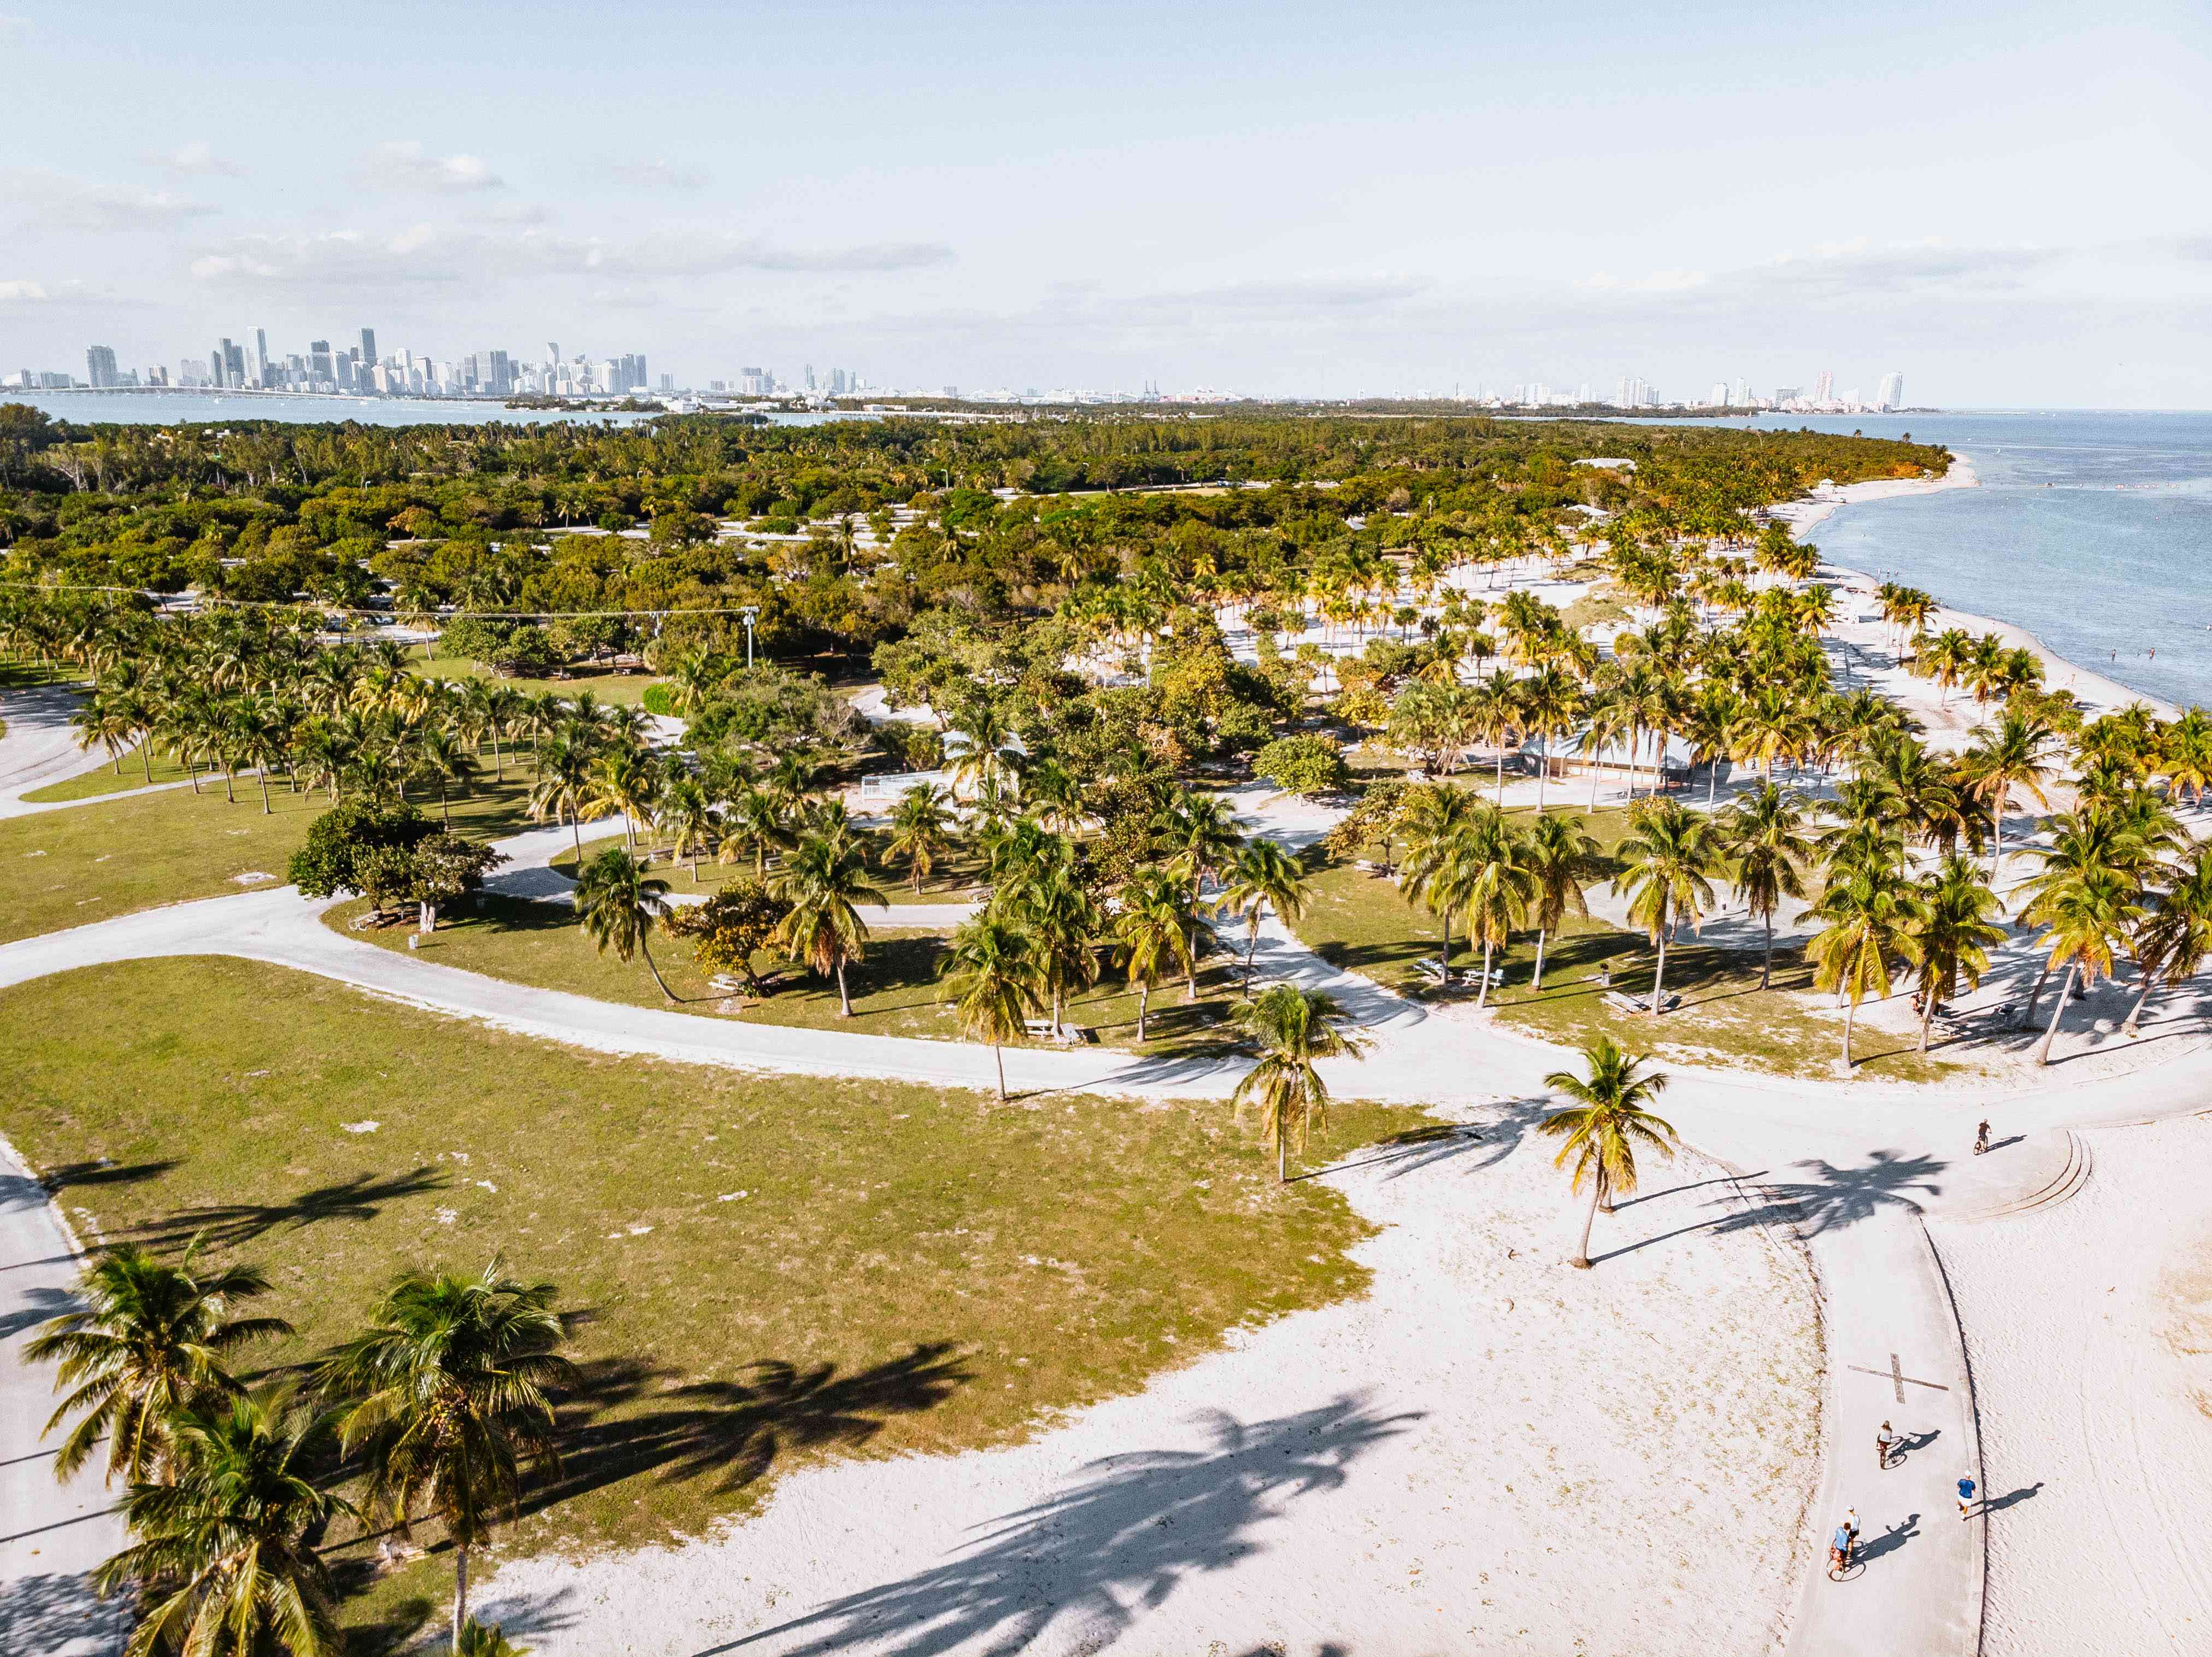 Drone view of Crandon Park in Key Biscayne beach and the Miami skyline.